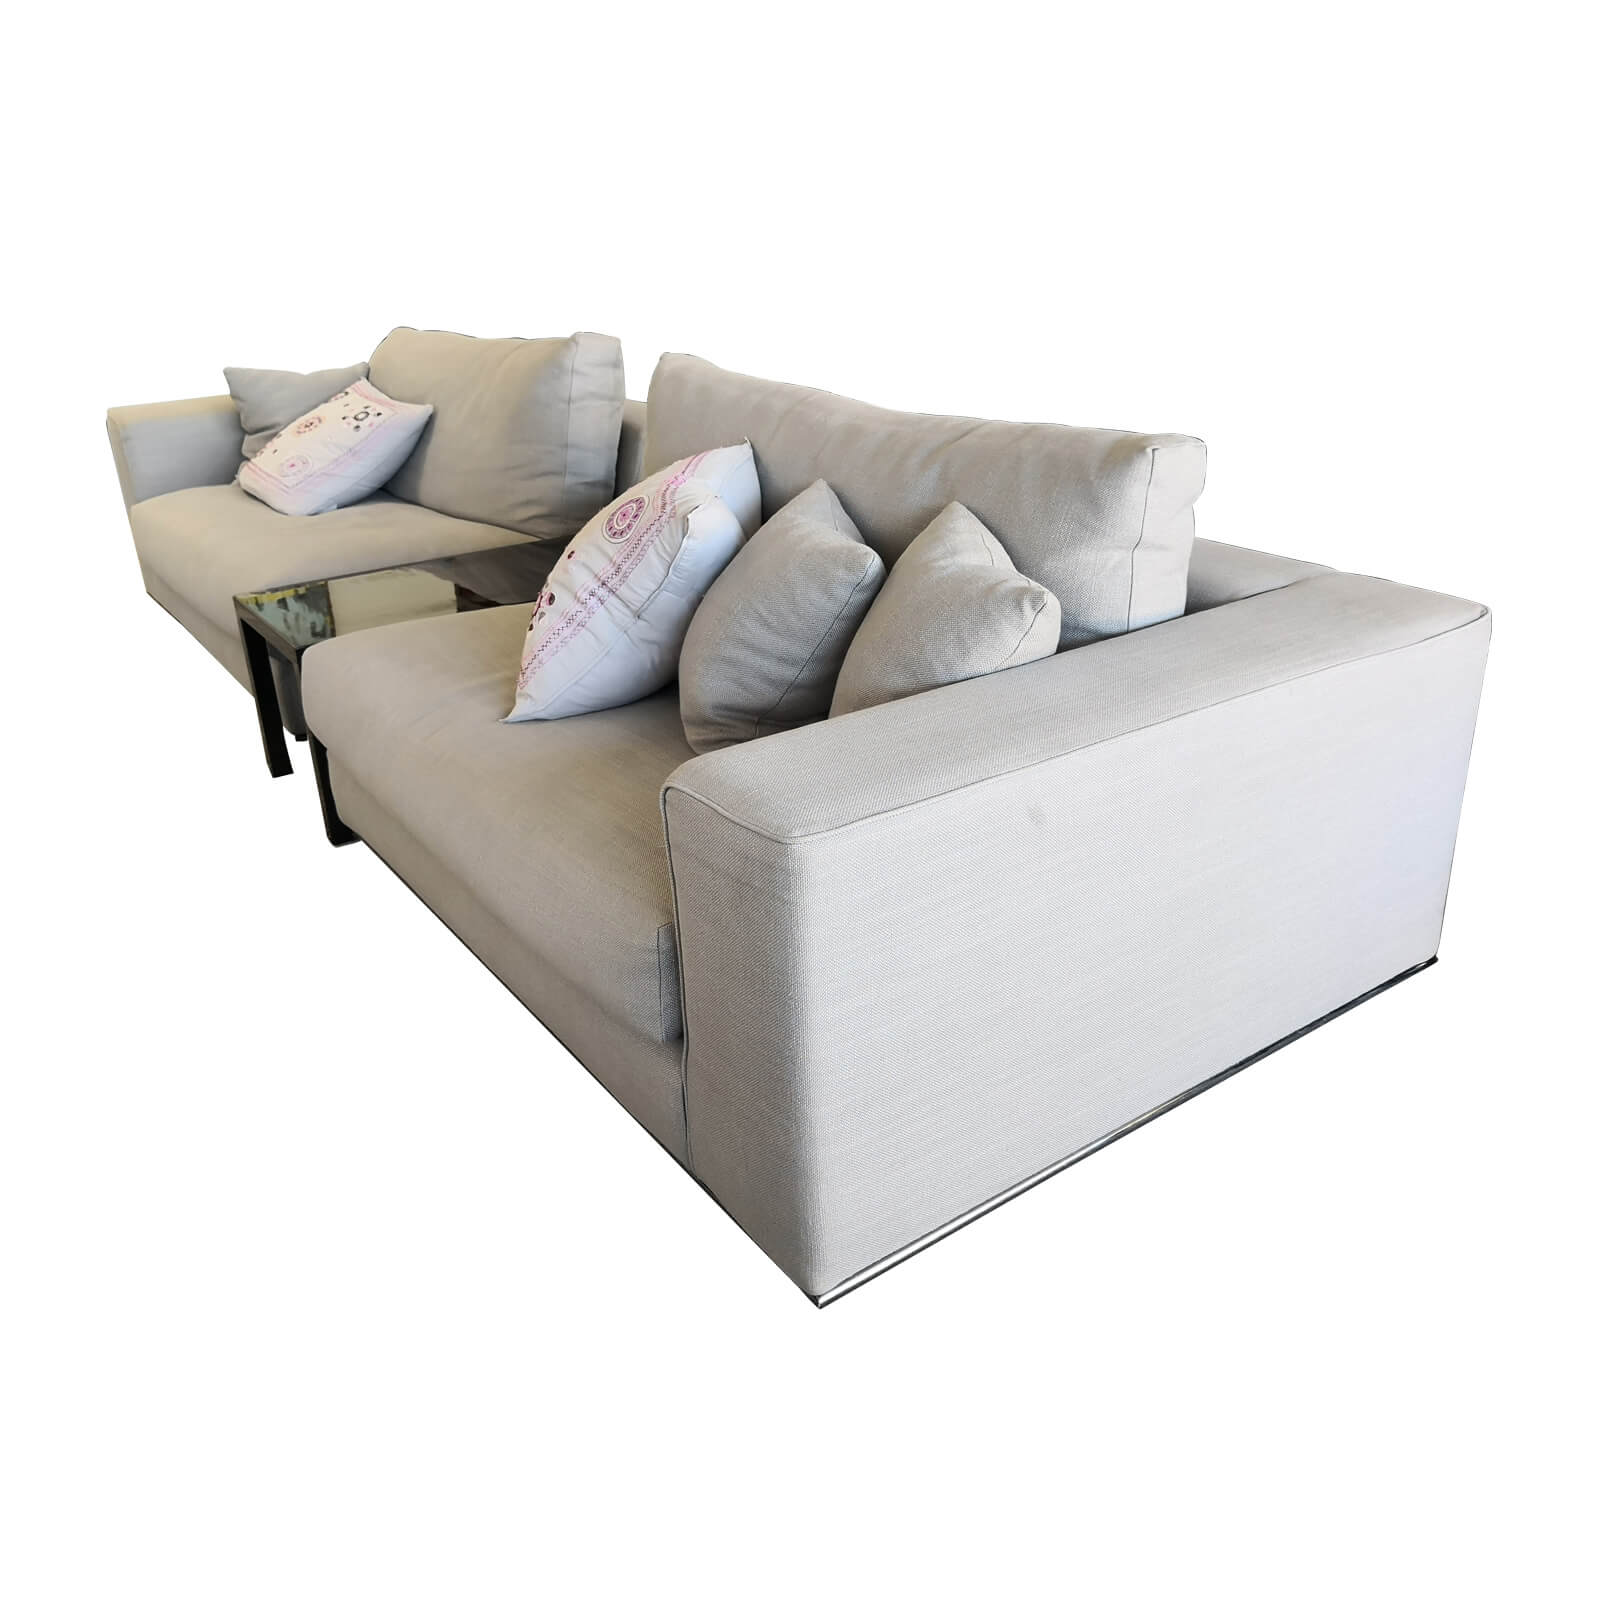 Second Hand Furniture Sydney Pick Up Second Hand New Ex Display Designer Furniture Two Design Lovers